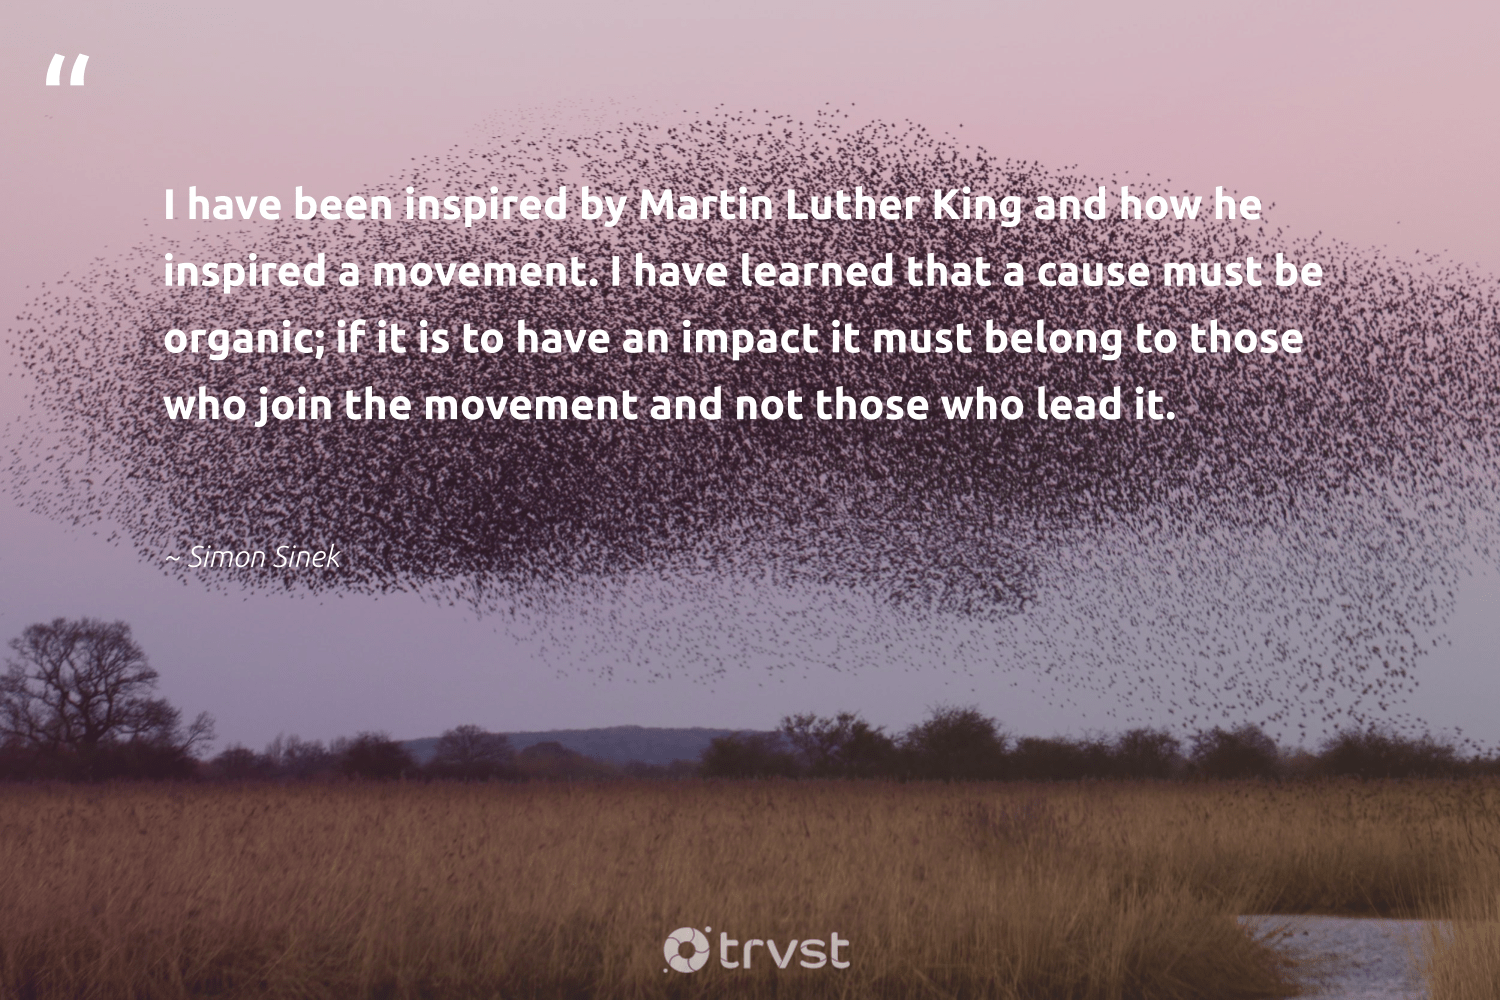 """I have been inspired by Martin Luther King and how he inspired a movement. I have learned that a cause must be organic; if it is to have an impact it must belong to those who join the movement and not those who lead it.""  - Simon Sinek #trvst #quotes #impact #cause #Charity #weareallone #bethechange #dotherightthing #fundraising #socialchange #workingtogether #takeaction"